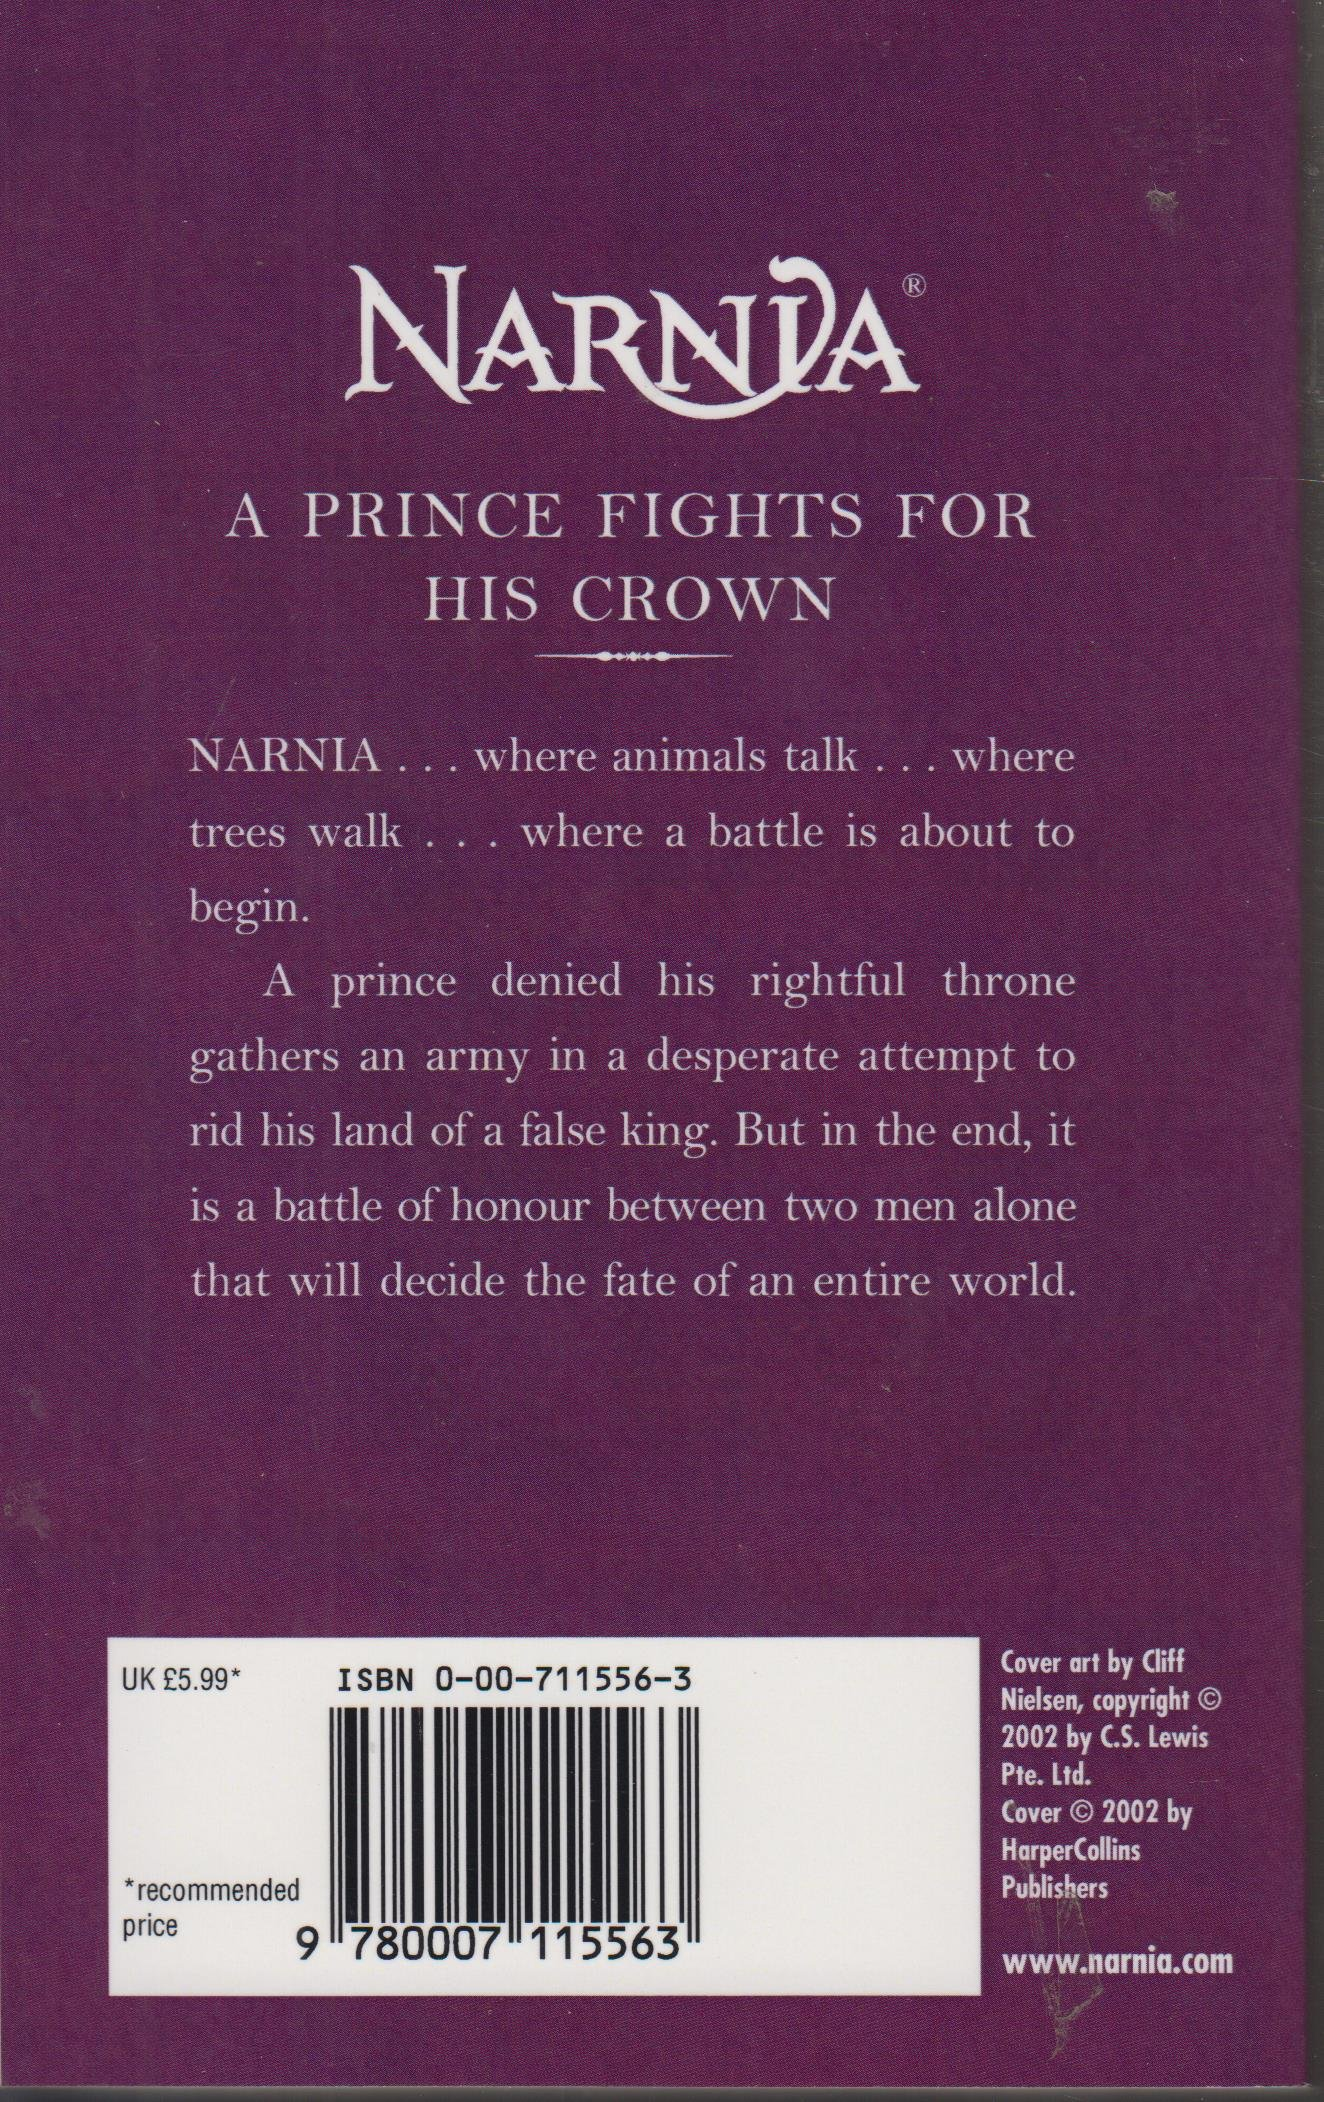 The Chronicles of Narnia: Prince Caspian Book 4